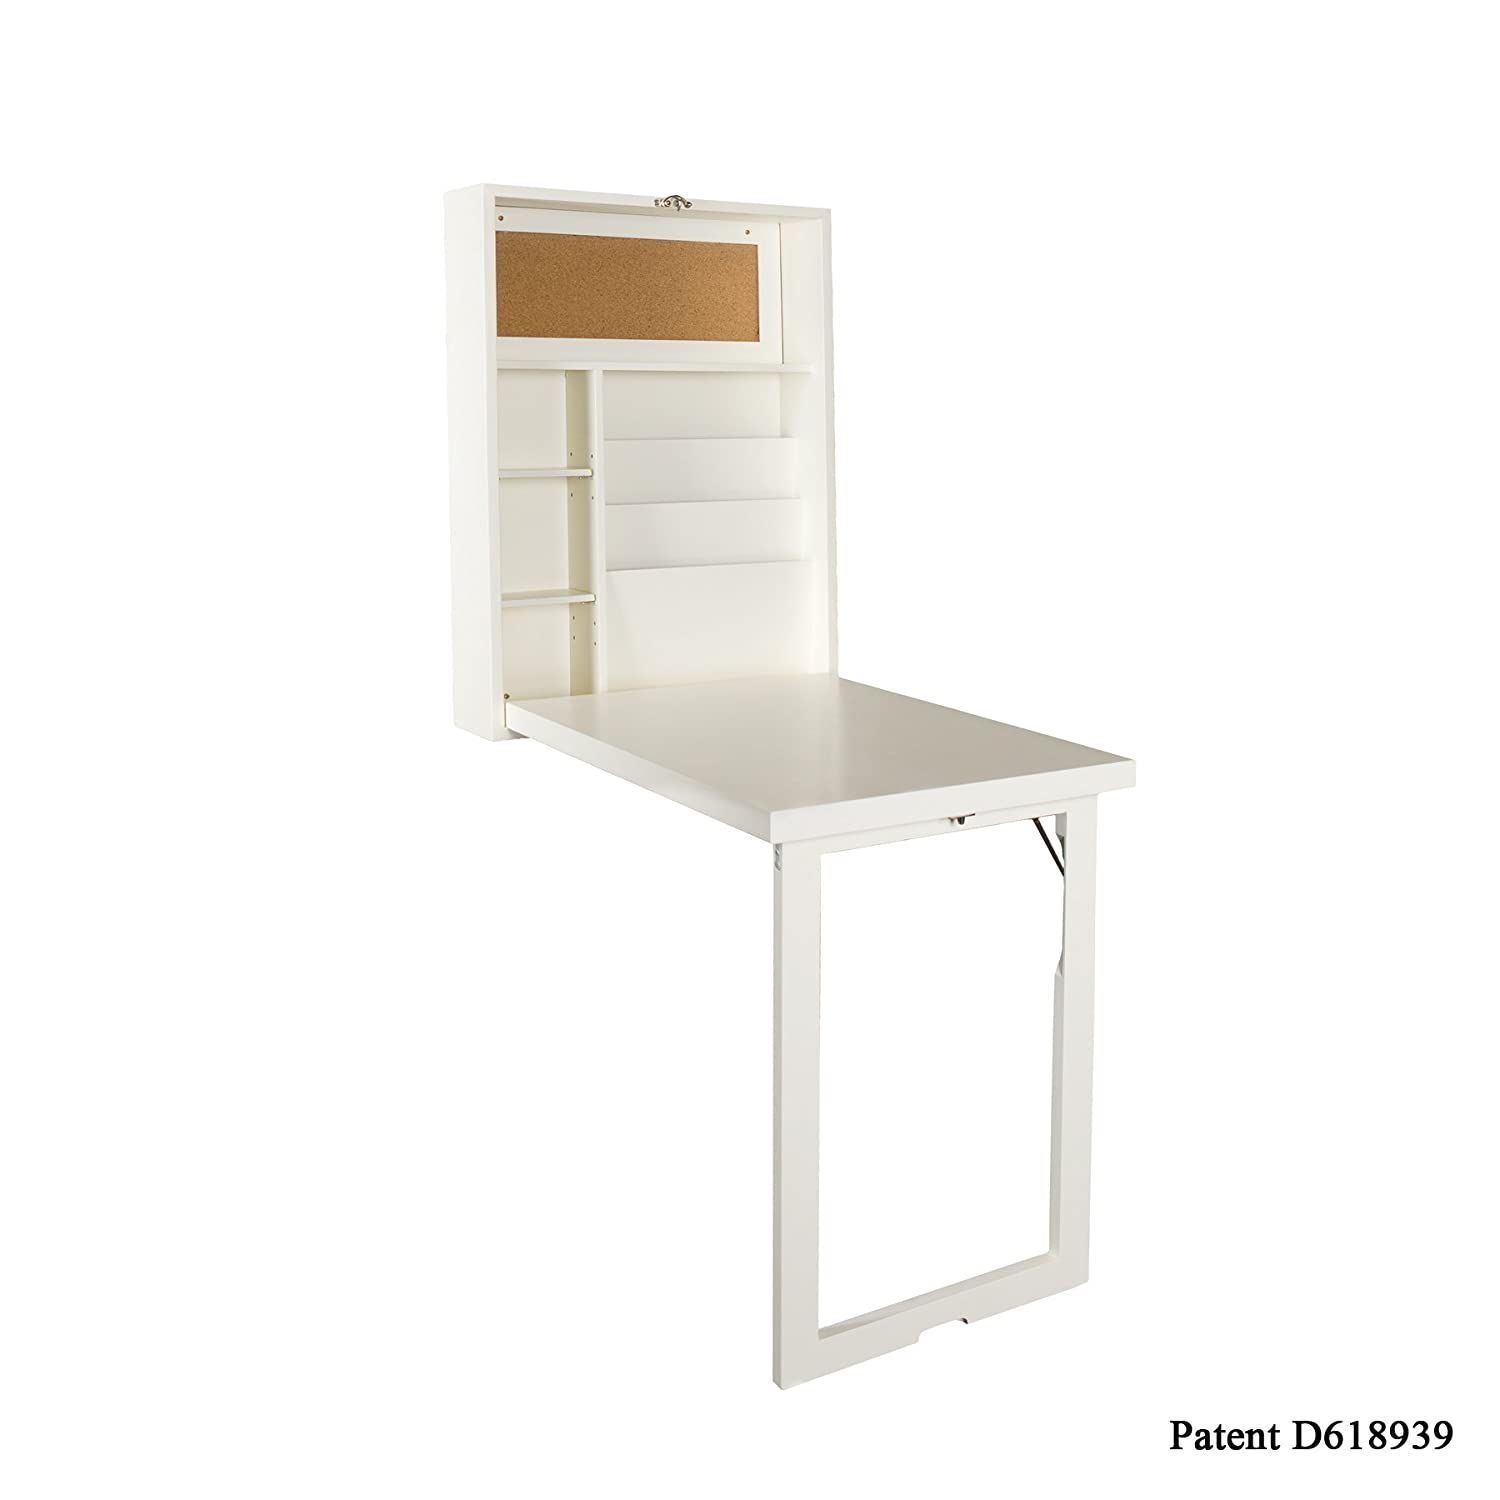 Fold Out Desk Fold Out Wall Mount Convertible Desk White Kitchen